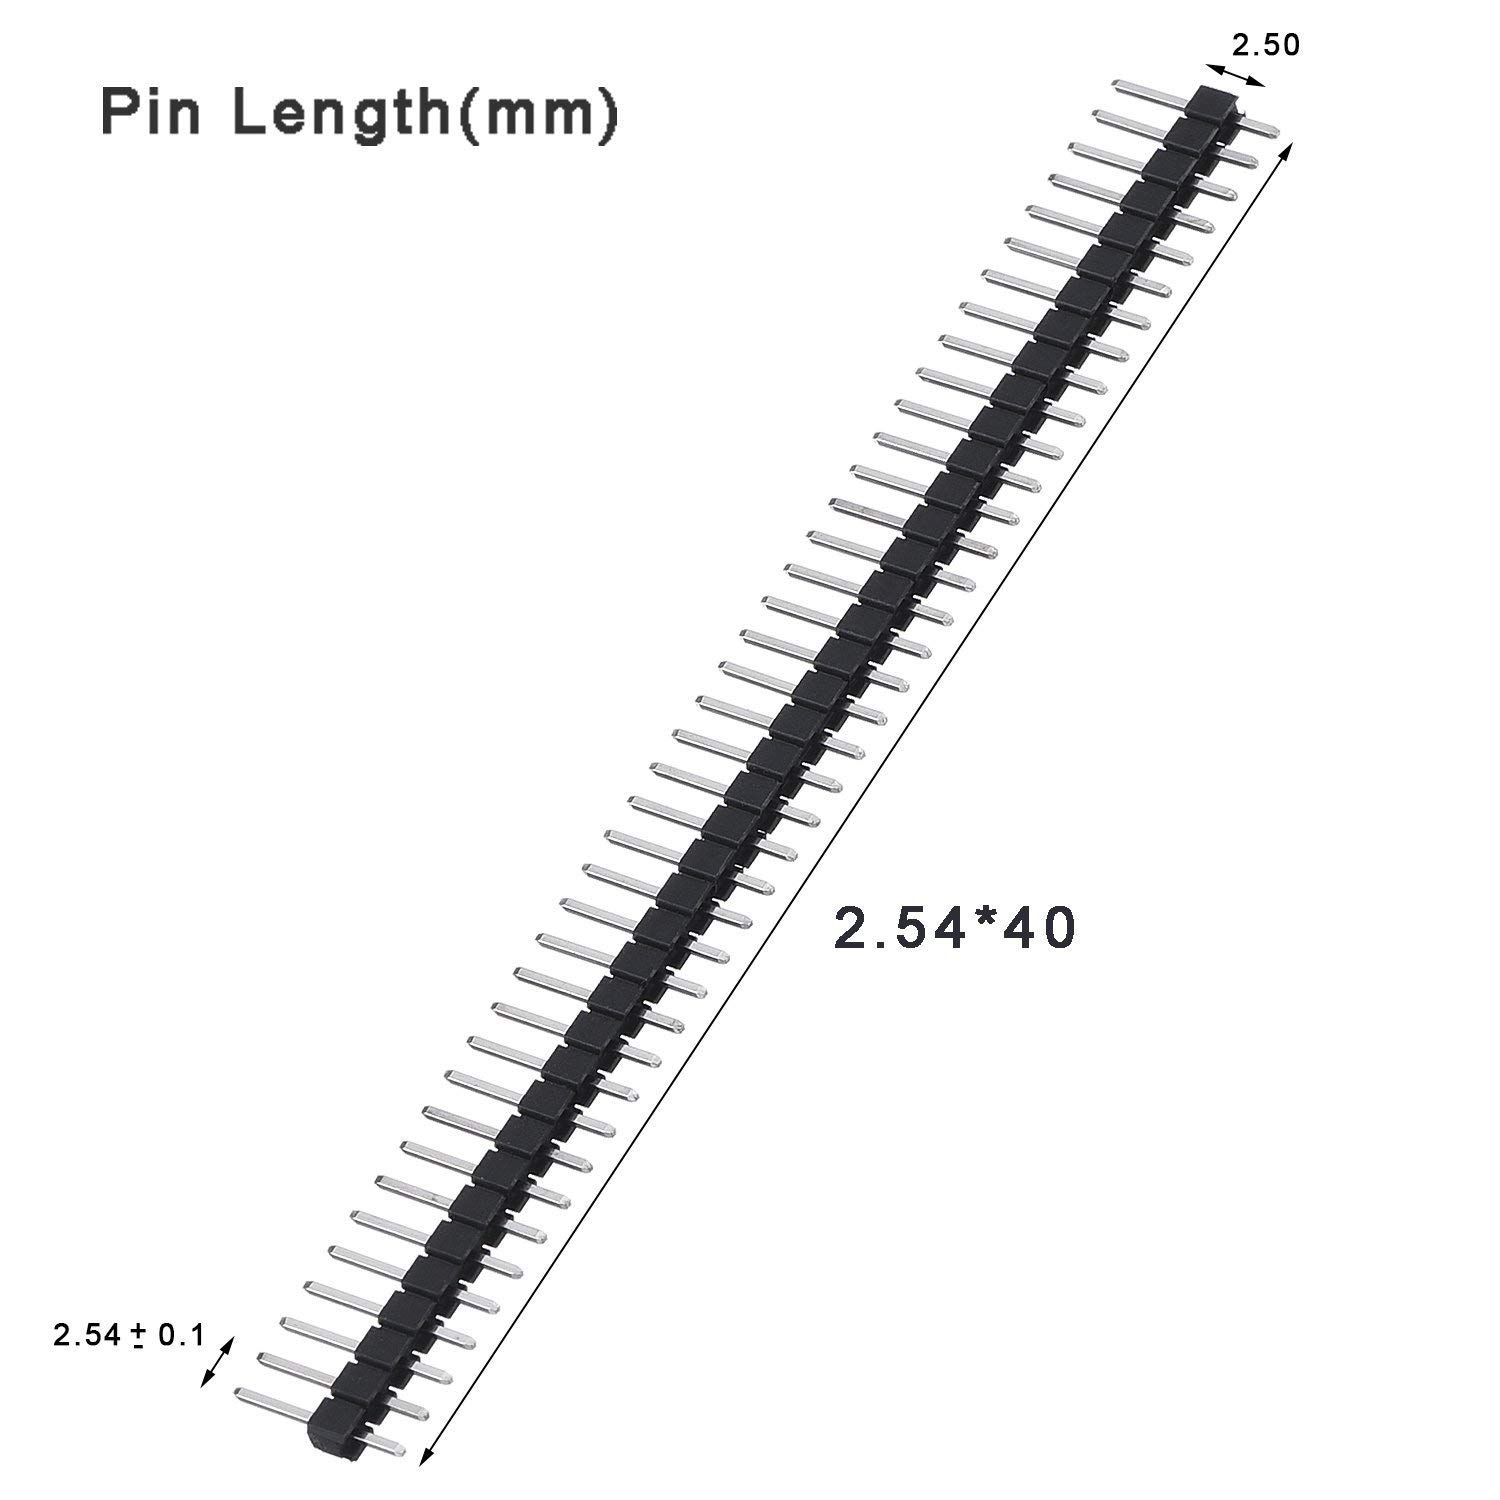 8 Pin Header Connector